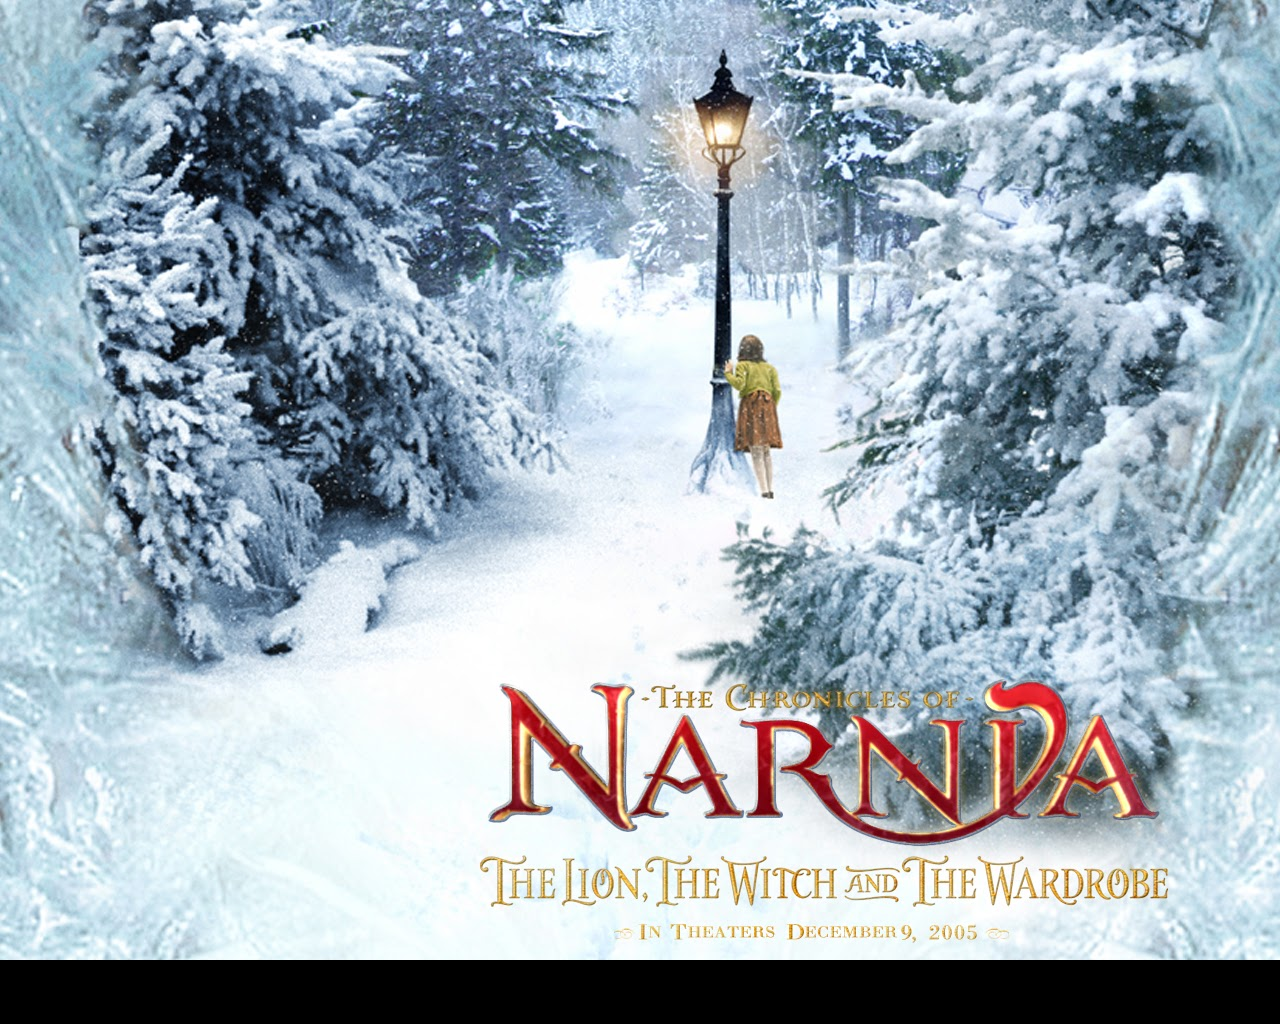 http://2.bp.blogspot.com/-WoriDdIjJpU/UBUVc7QbtEI/AAAAAAAABYc/HhmimKYwtsI/s1600/2005_the_chronicles_of_narnia_wallpaper_013.jpg